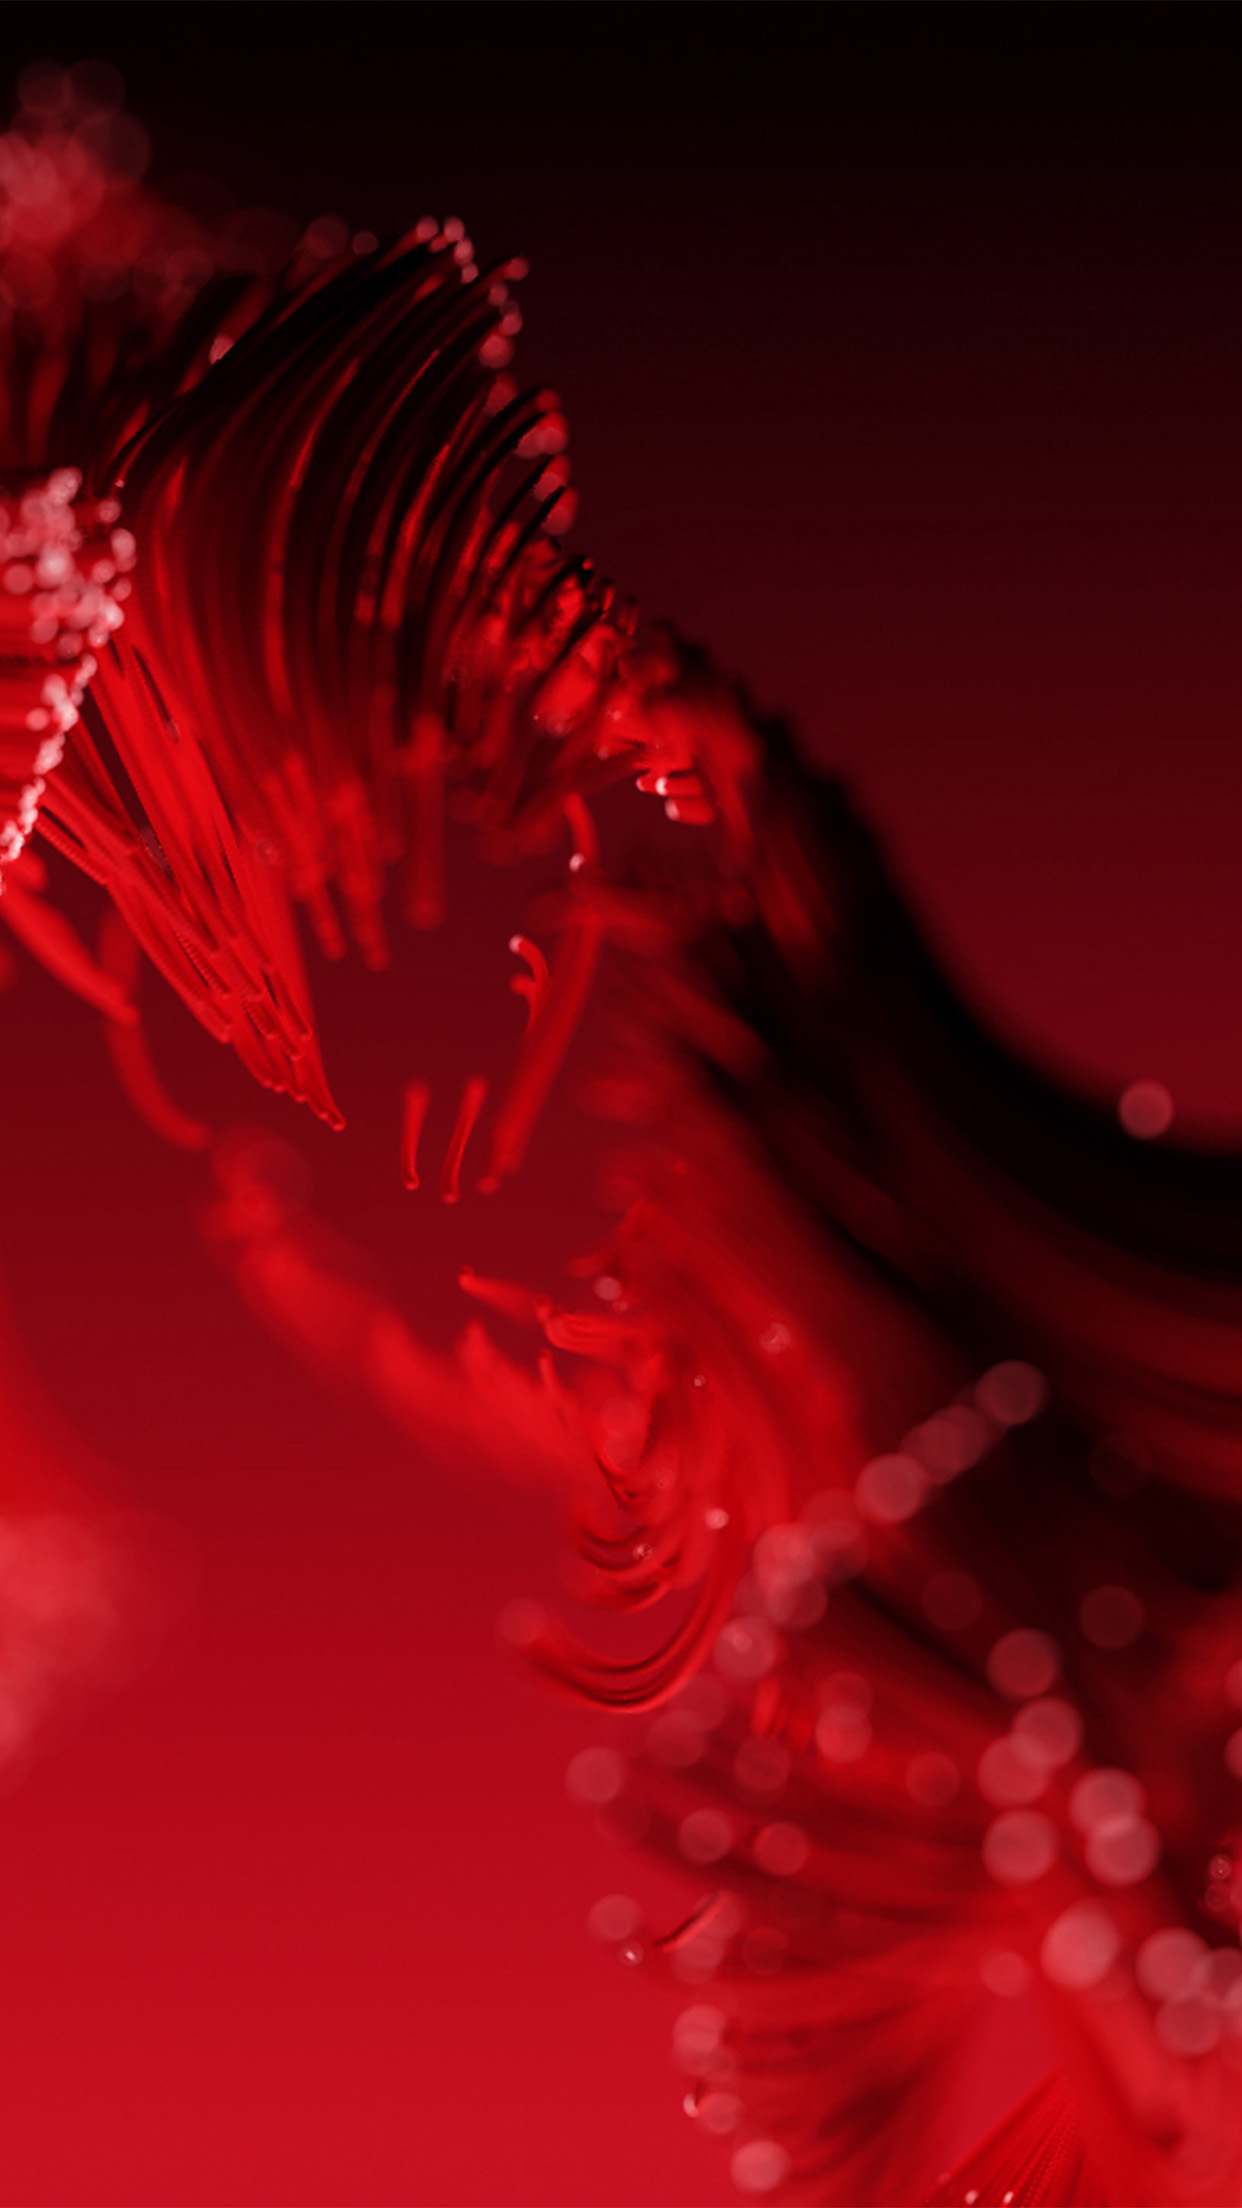 vy95-lines-red-abstract-pattern-background-wallpaper